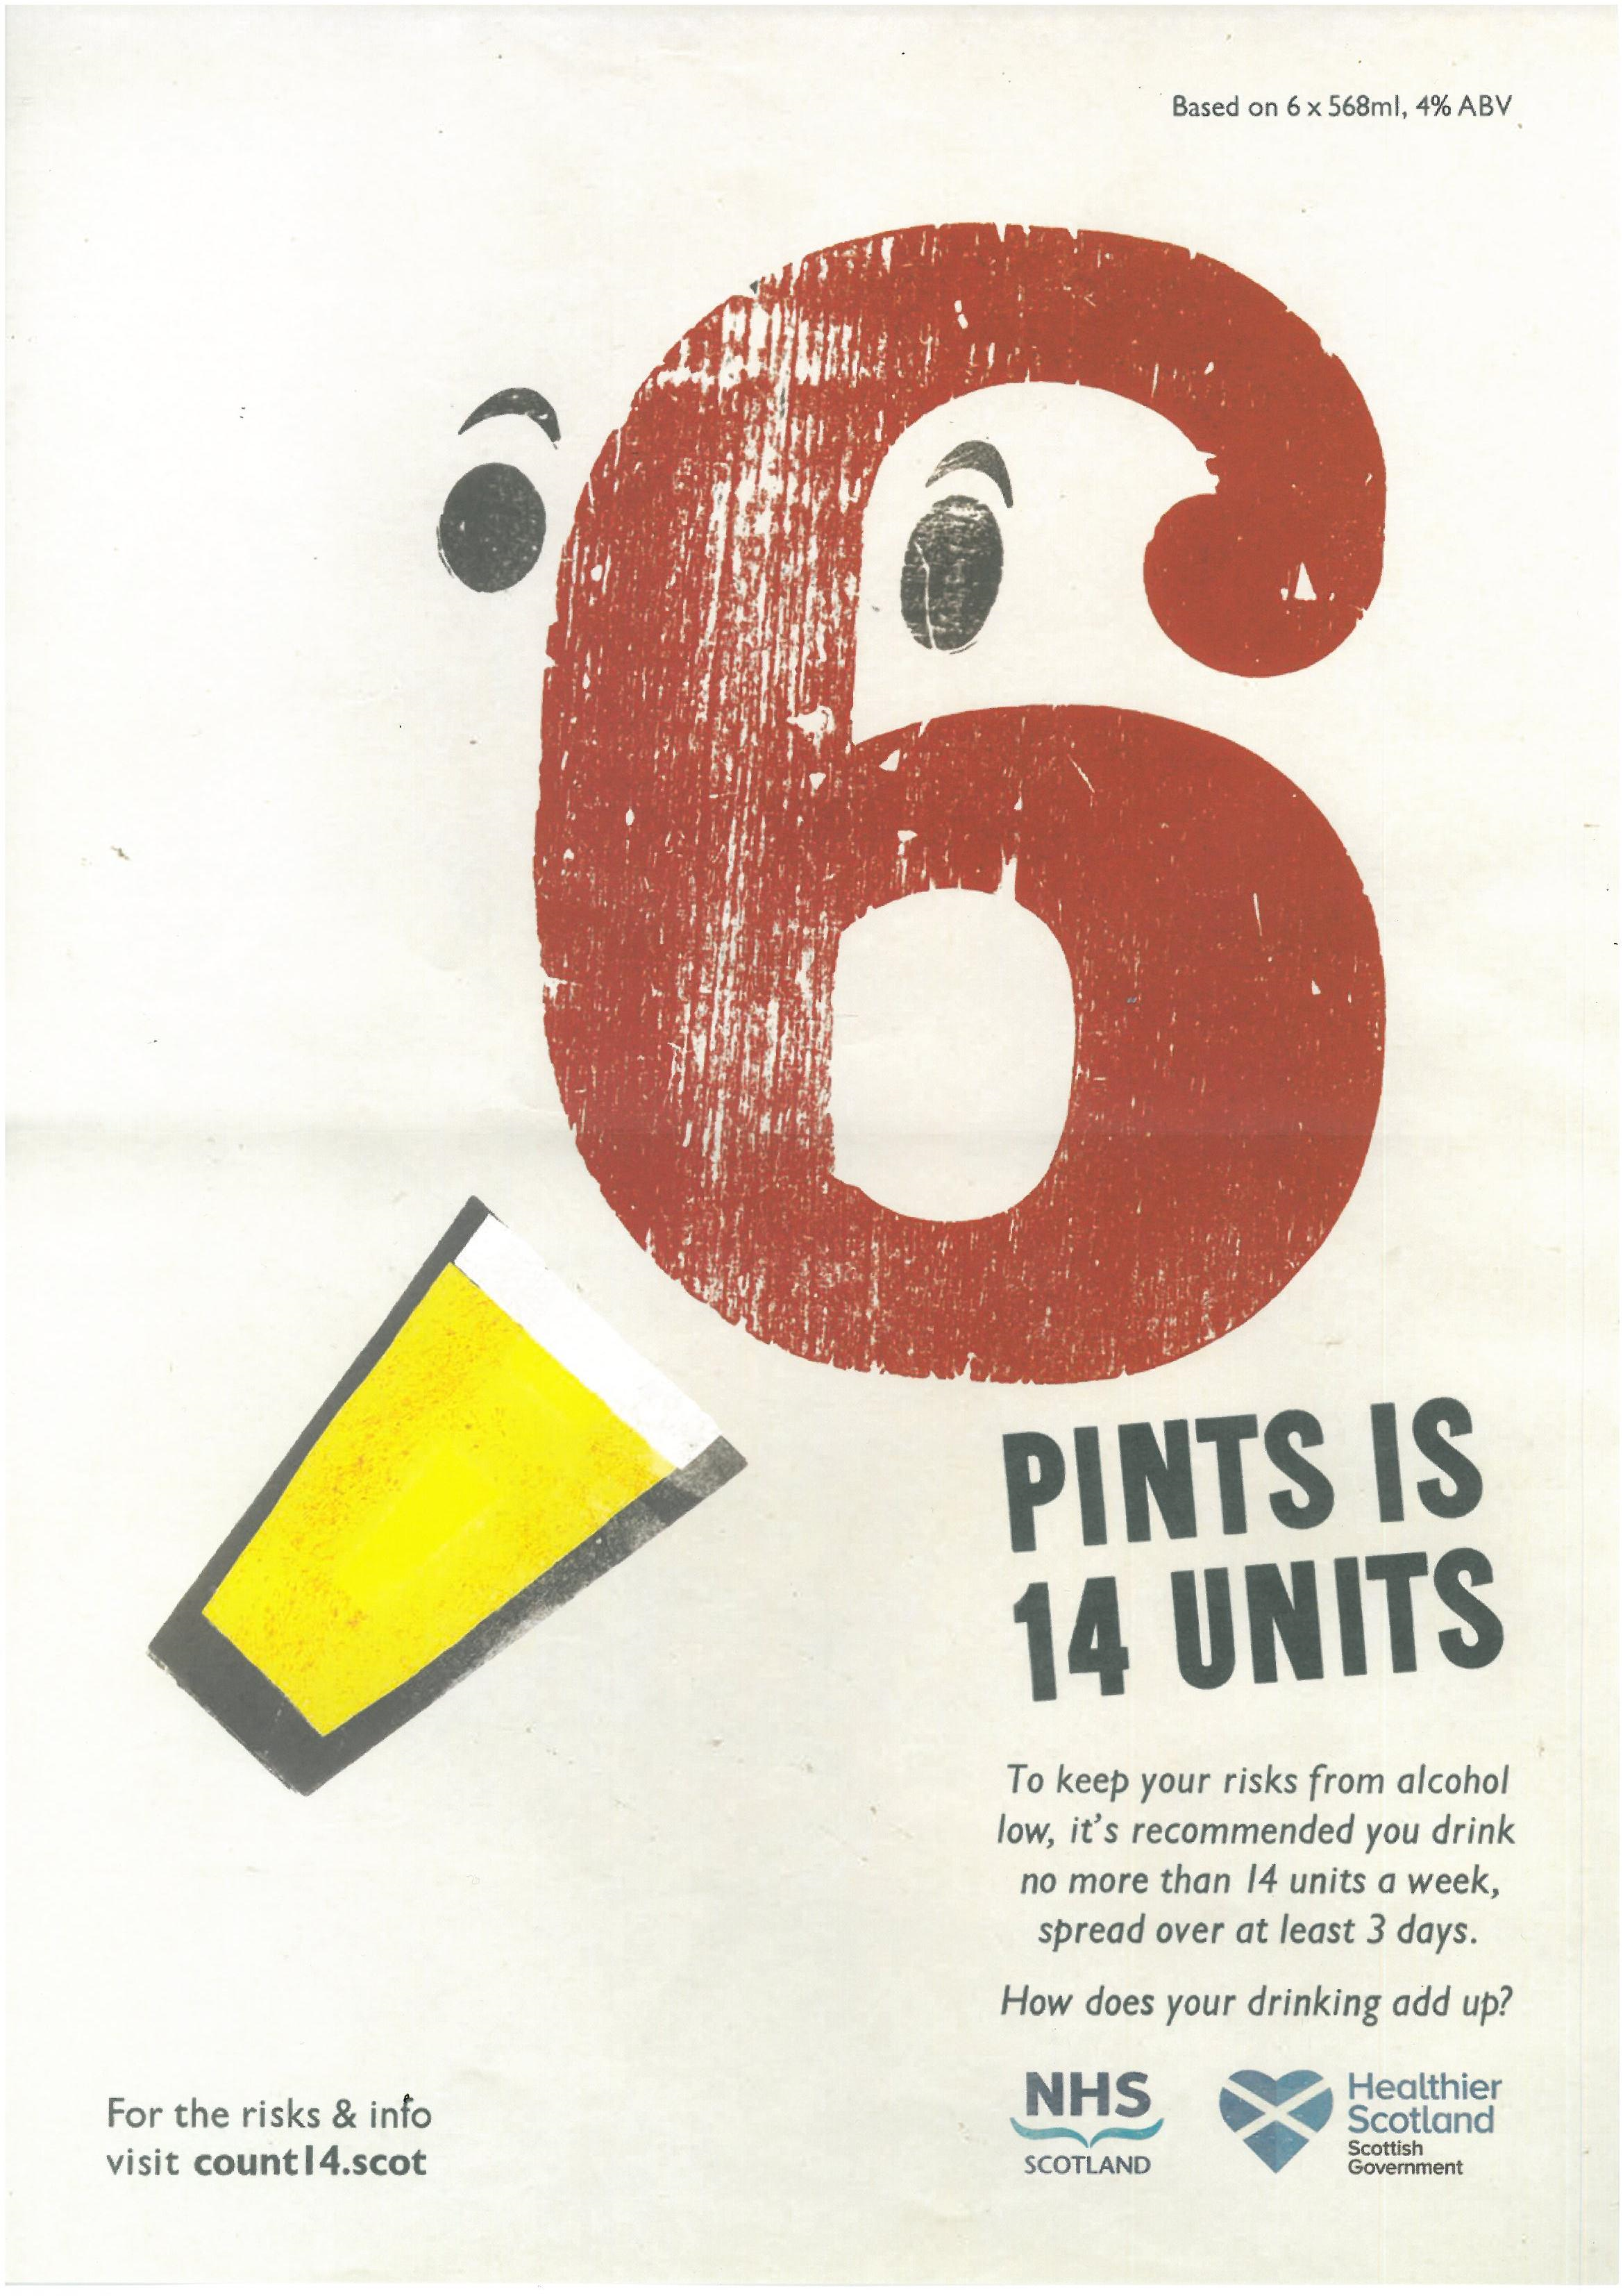 Count14 6 Pints Poster